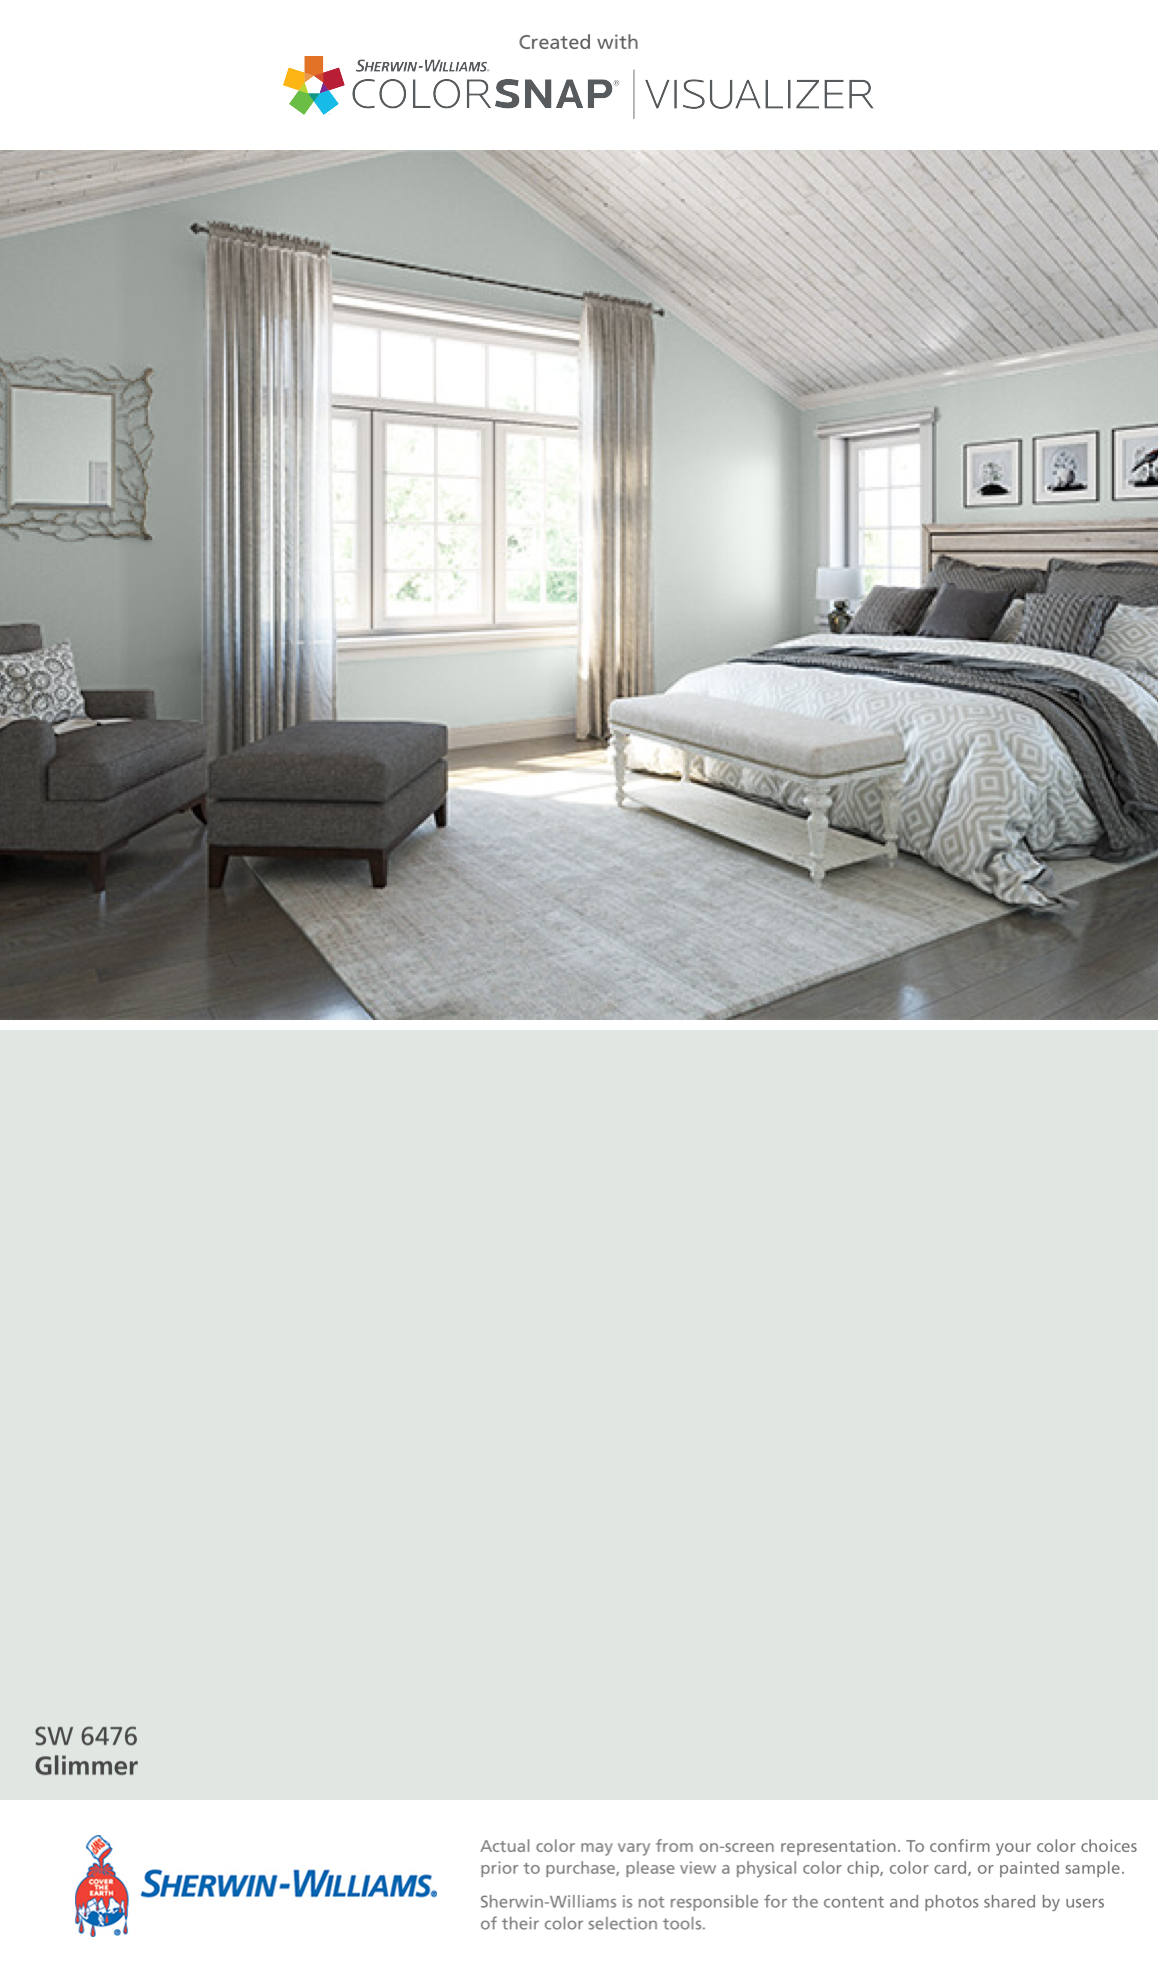 I Found This Color With Colorsnap Visualizer For Iphone By Sherwin Williams Glimmer